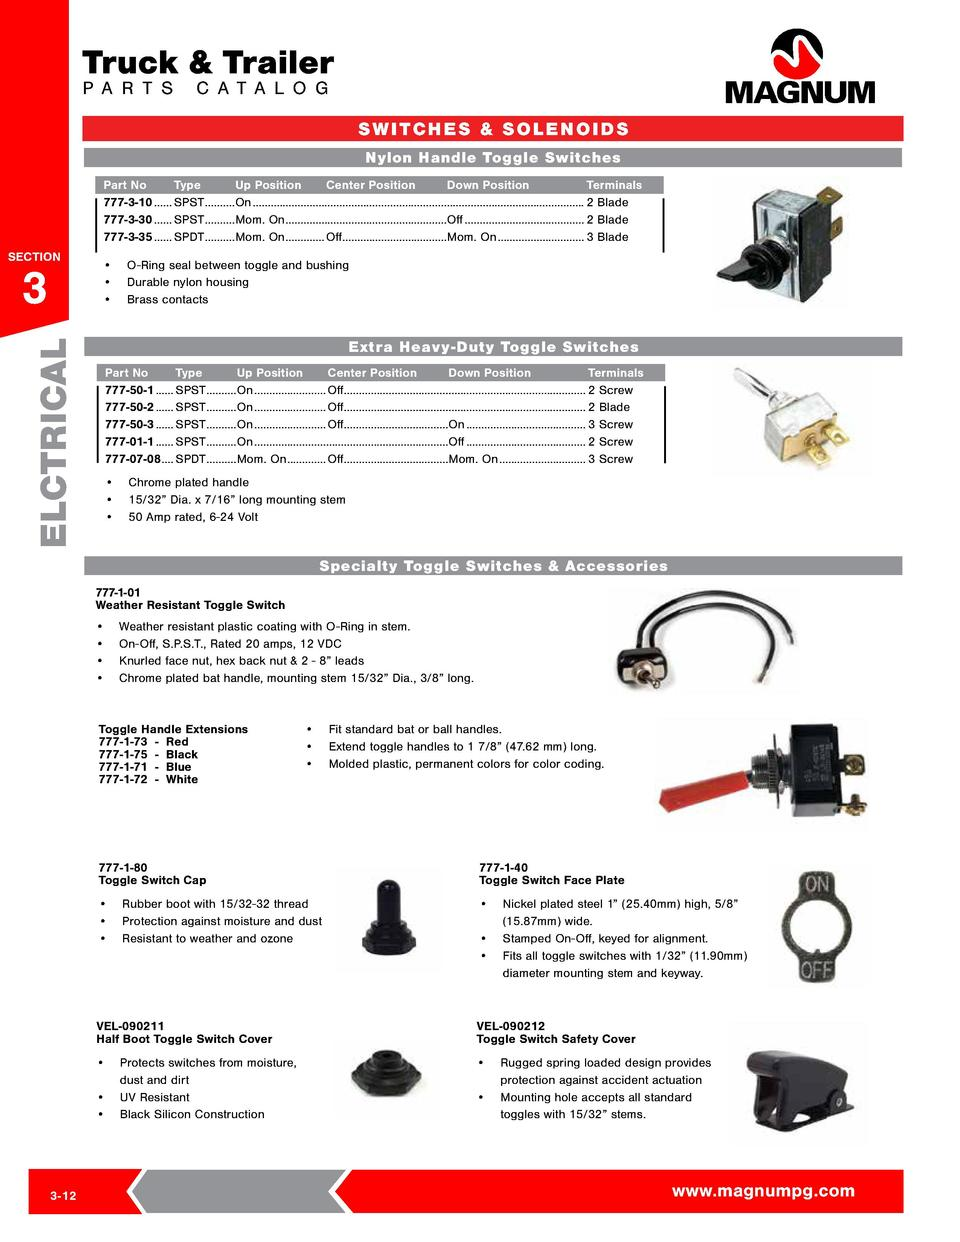 Truck & Fleet Products | McKinney Texas | Magnum Products Group